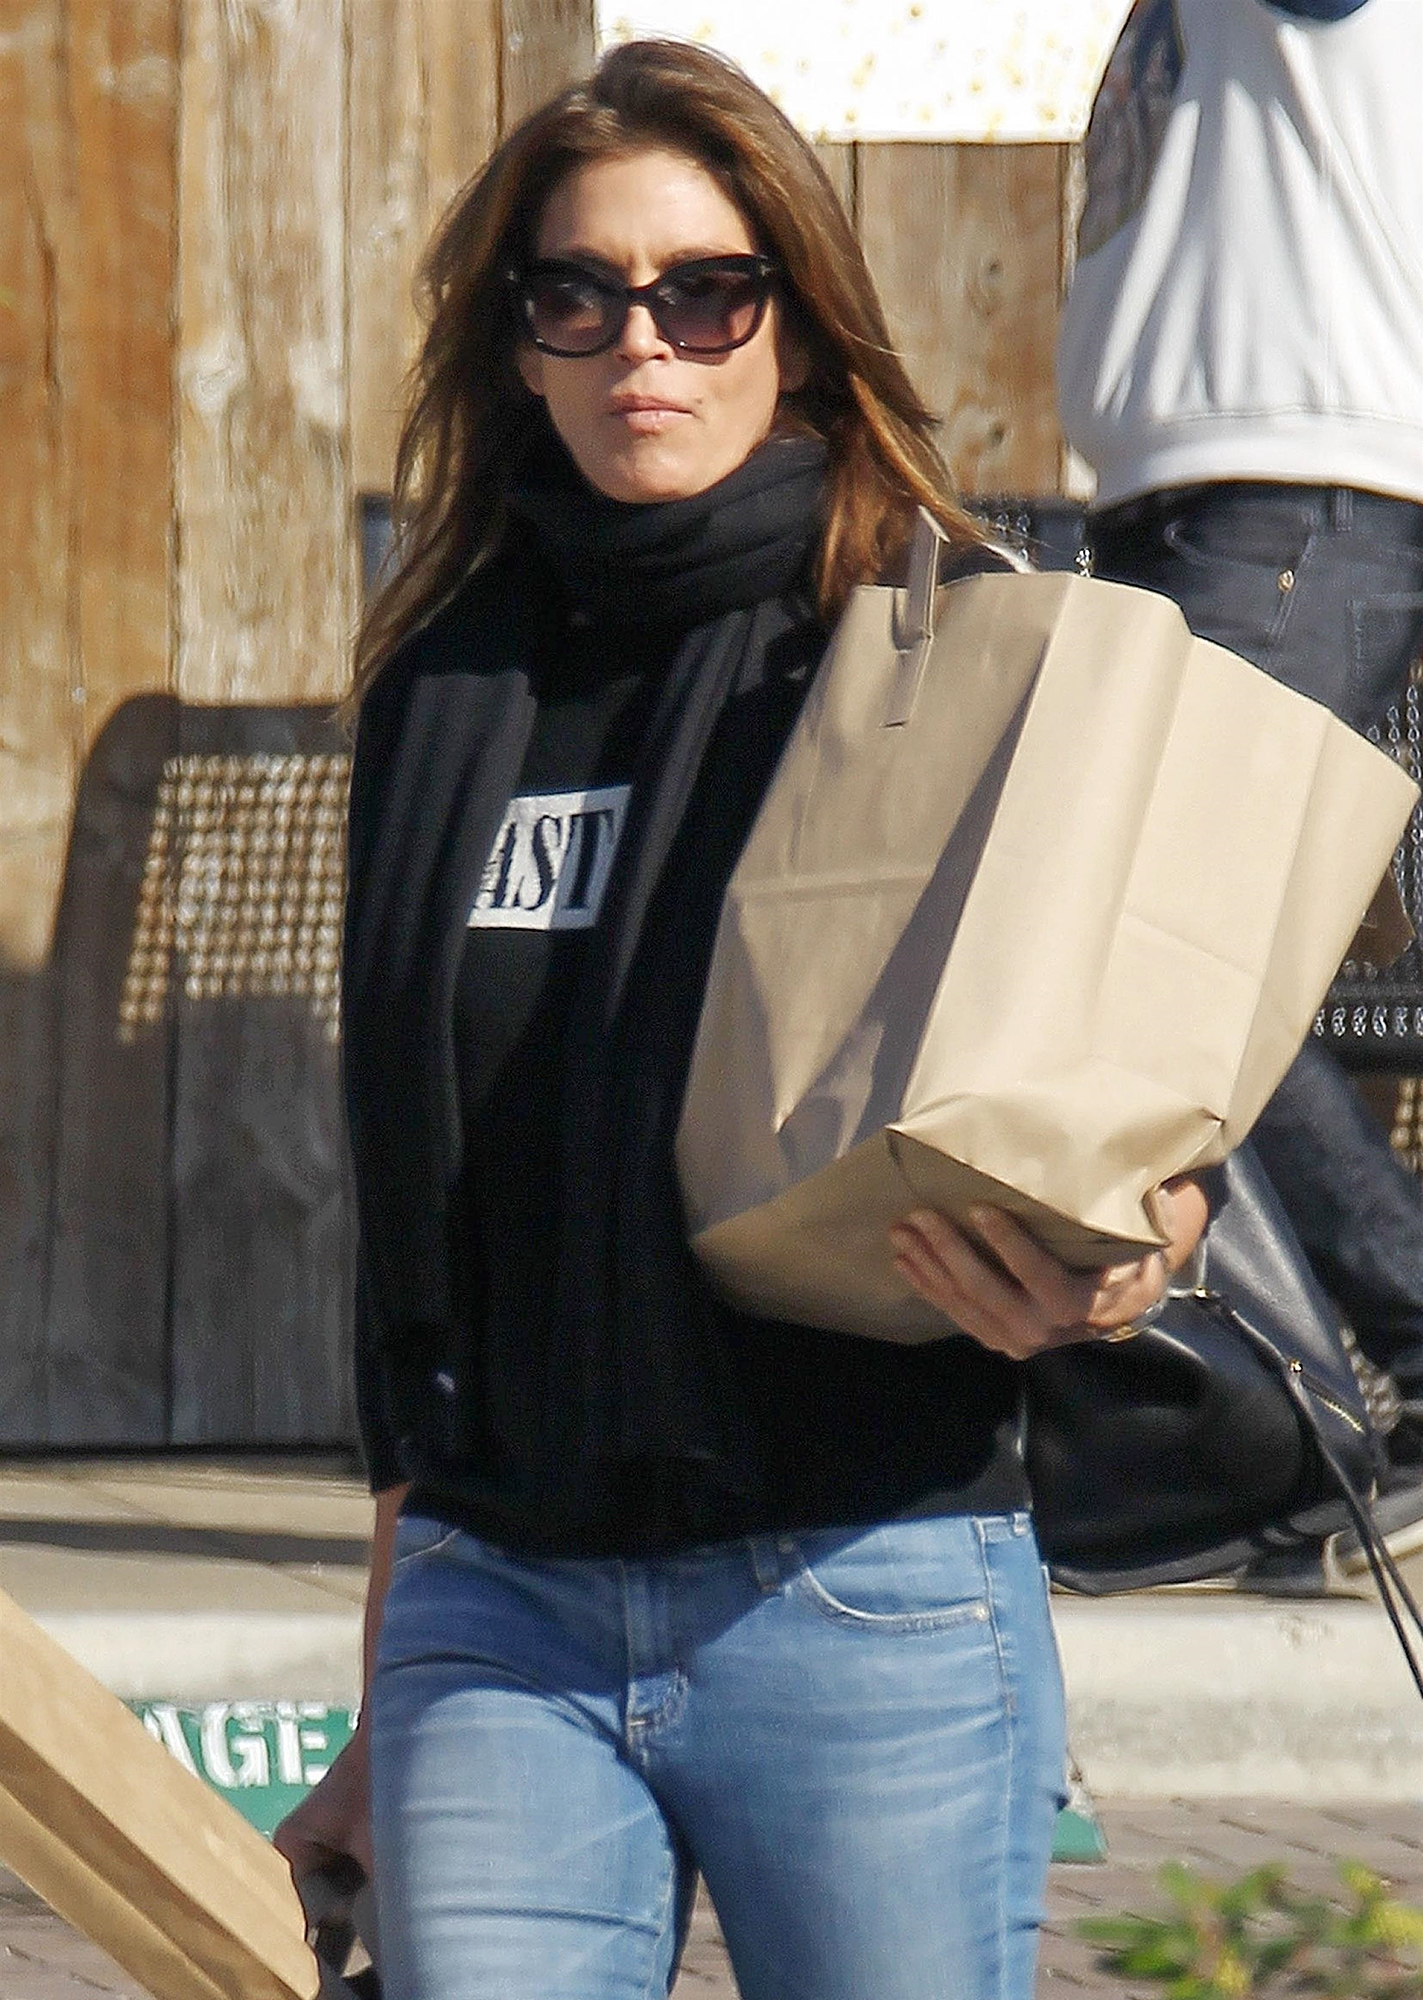 *EXCLUSIVE* Cindy Crawford starts her morning off with a trip to the grocery store